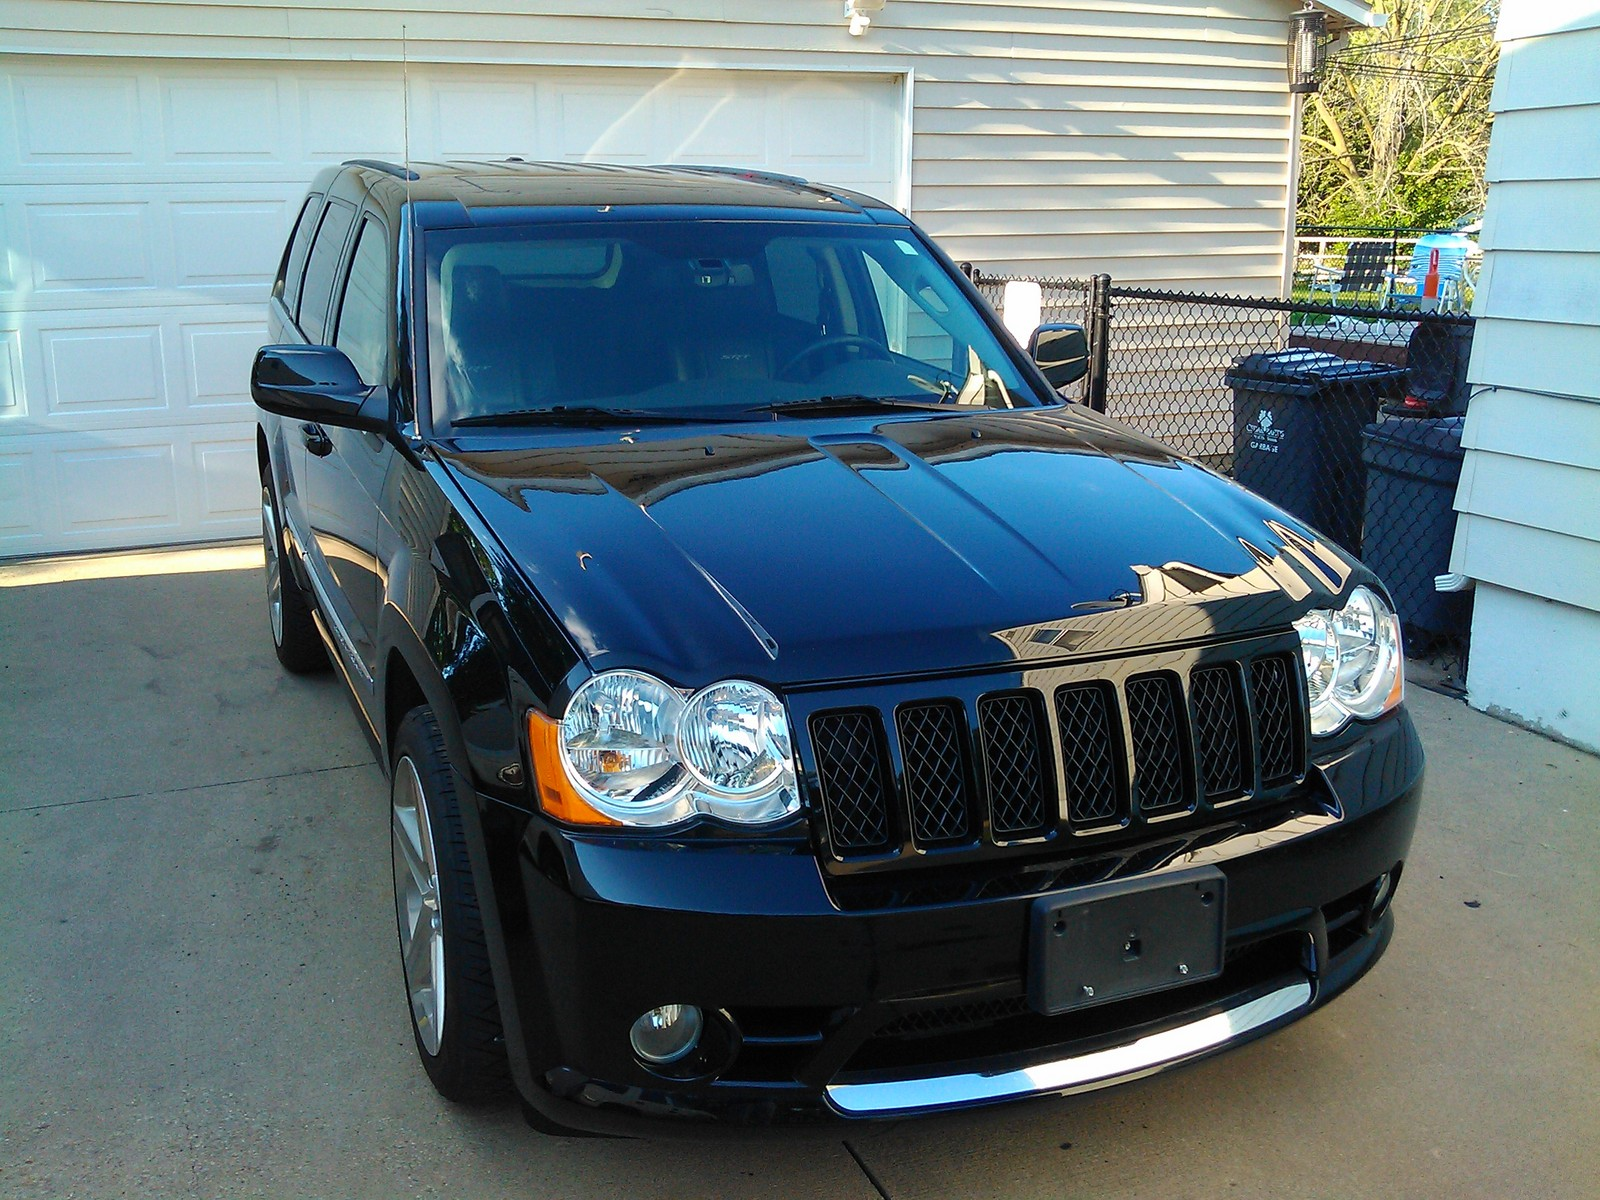 2008 jeep cherokee srt8 1/4 mile trap speeds 0-60 - dragtimes